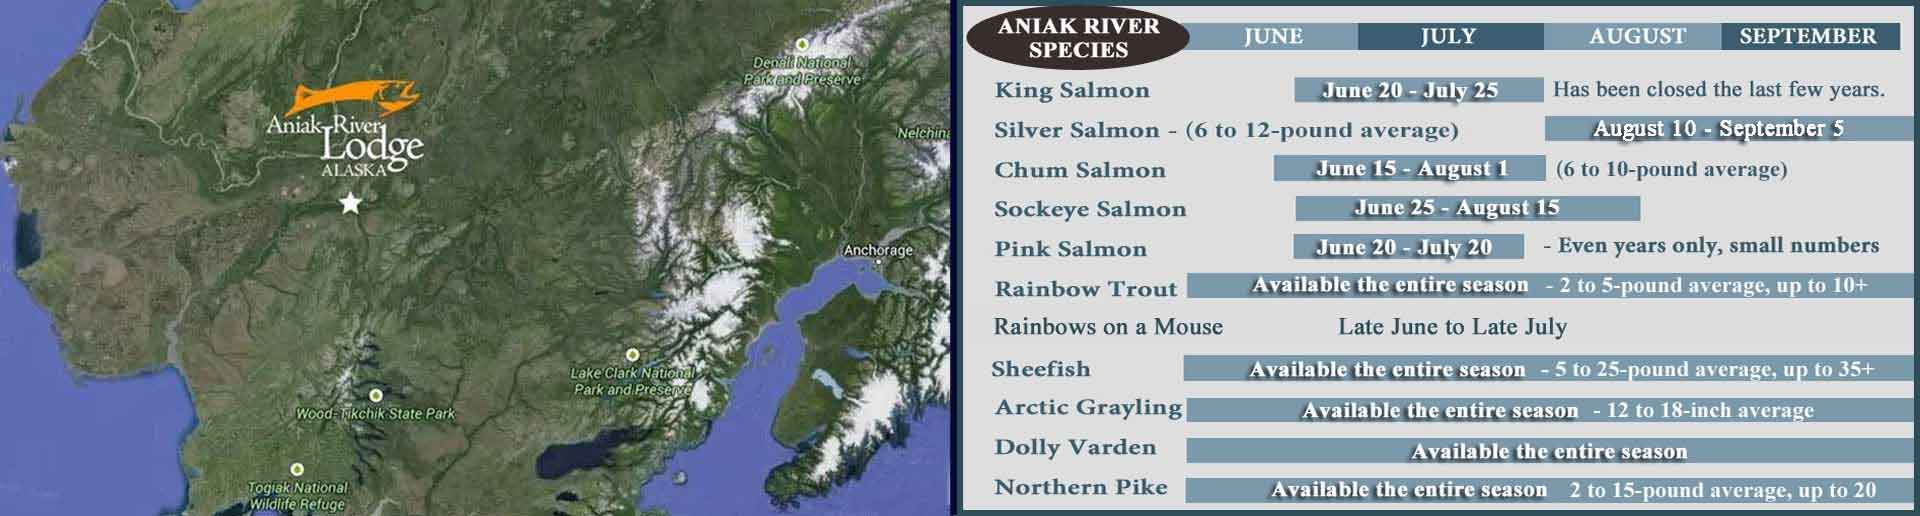 Aniak River Seasons and Species